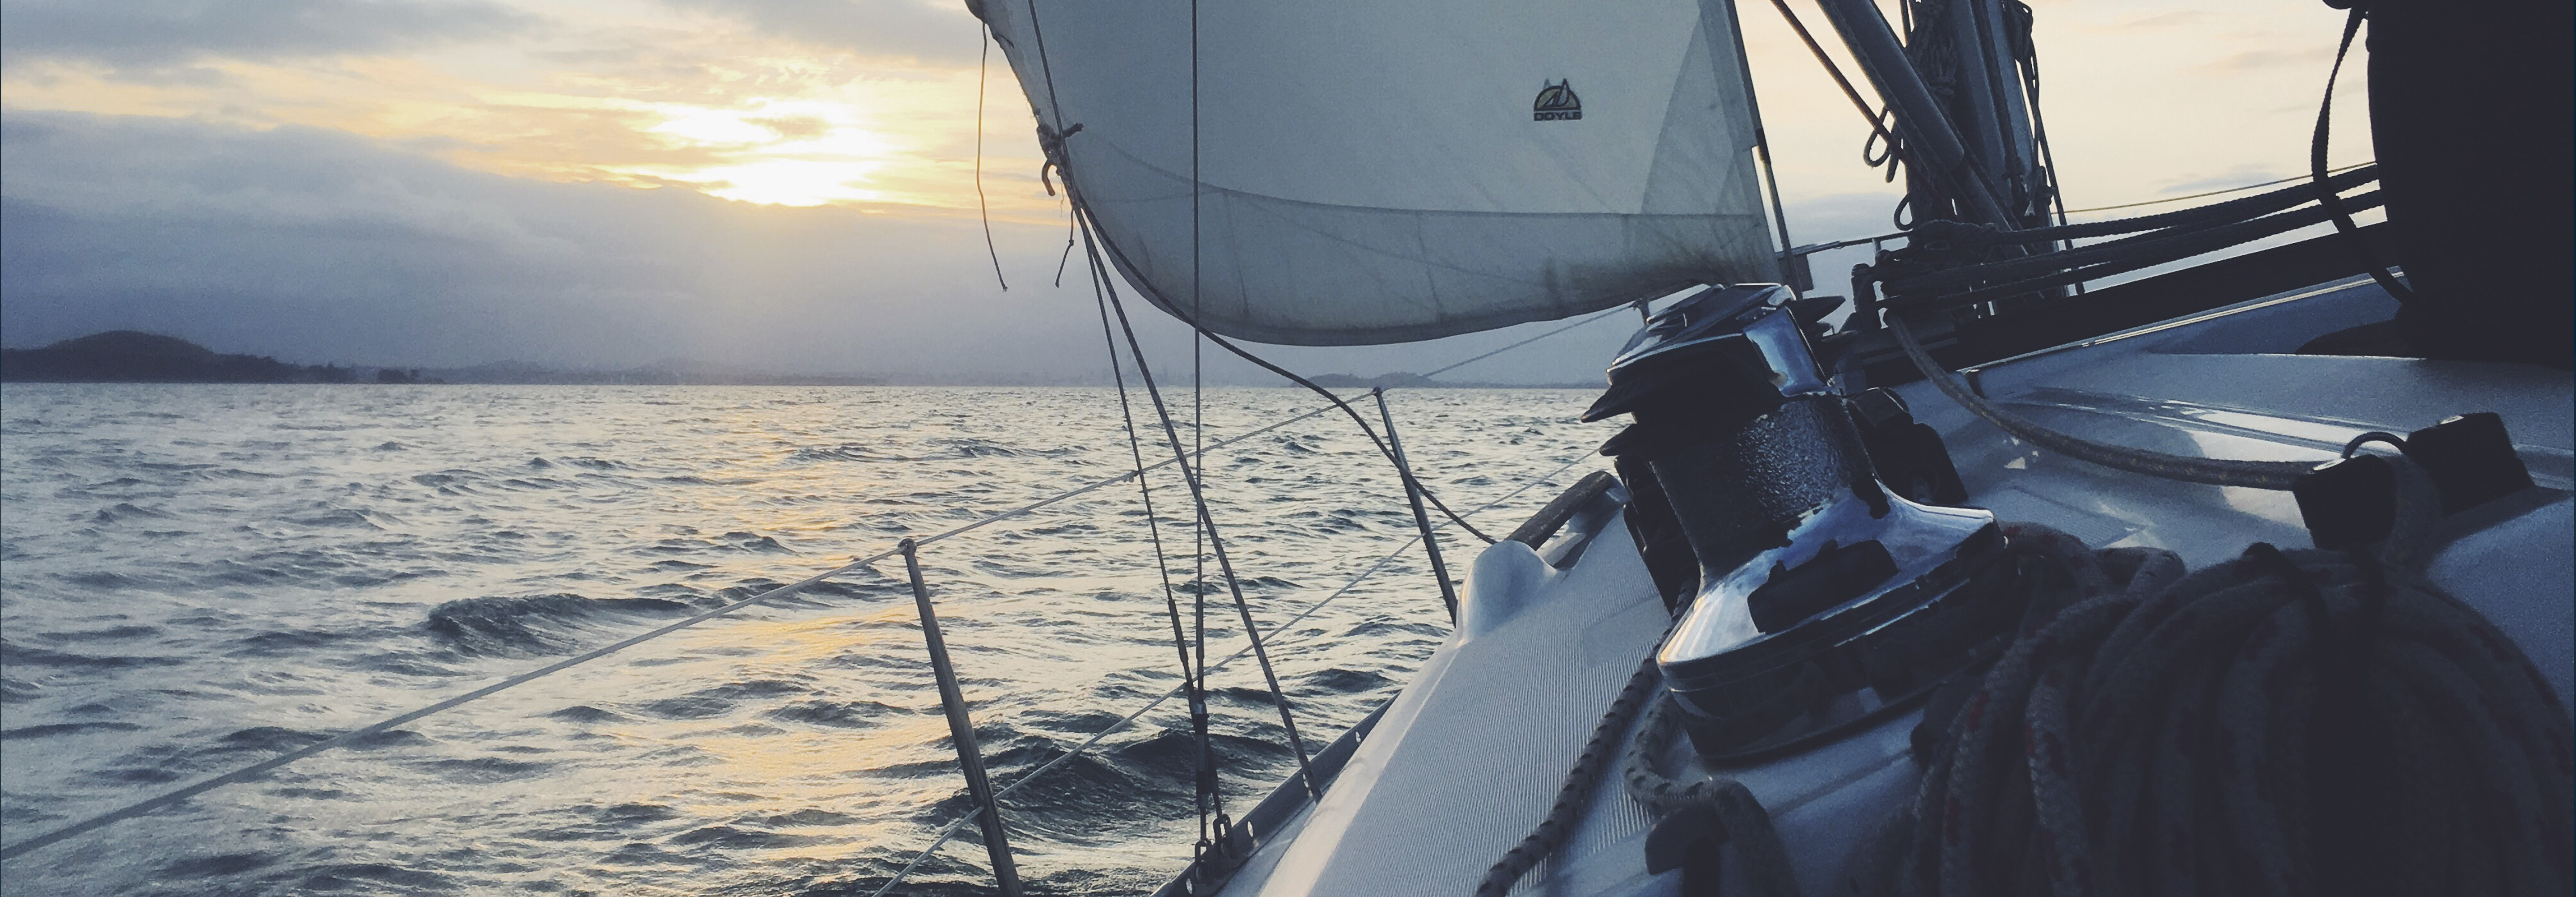 I believe being a way finder is more than about navigation at sea. It is a metaphor about a personal journey. Every decision in life determines our course.